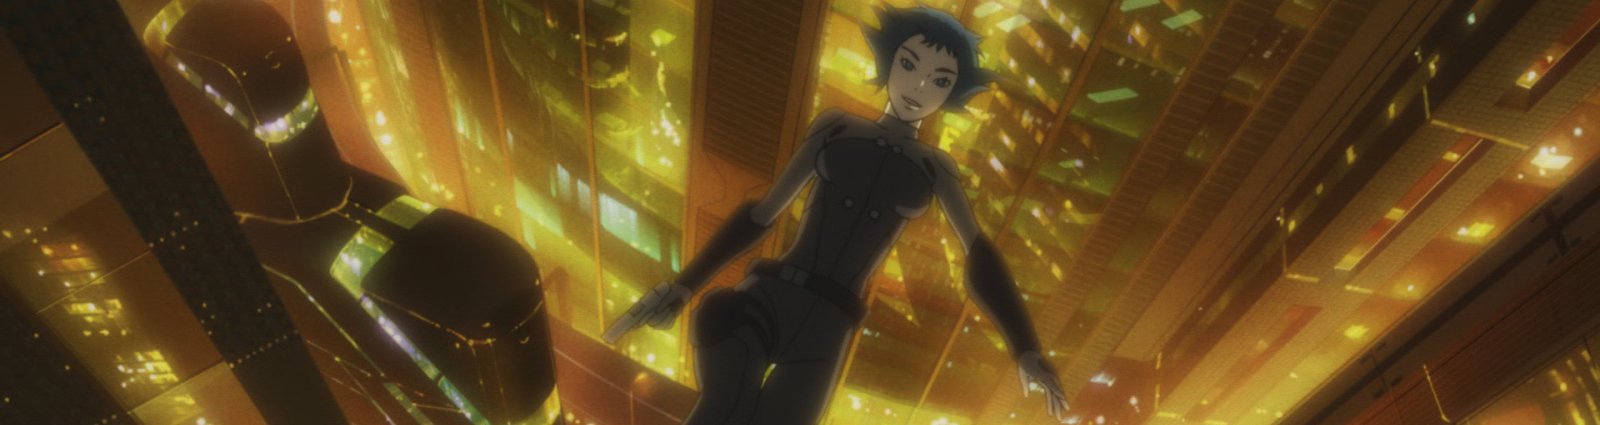 Ghost in the Shell ARISE - 01 - Ghost Pain, The Major, Motoko Kusanagi, Ghost in the Shell: Arise, Production IG, 2013